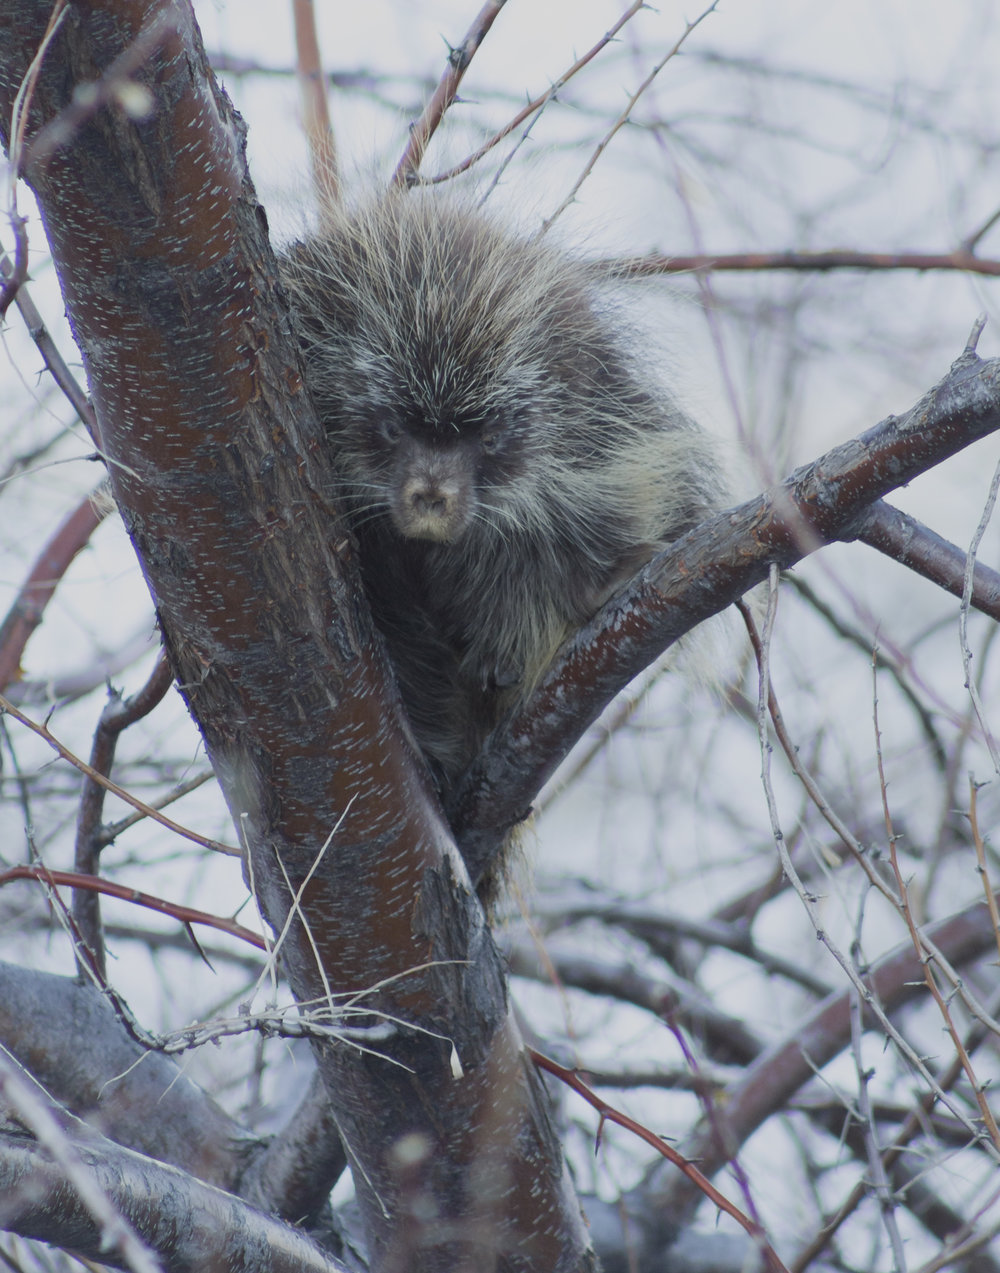 I'm pretty sure this porcupine is giving me the death glare.